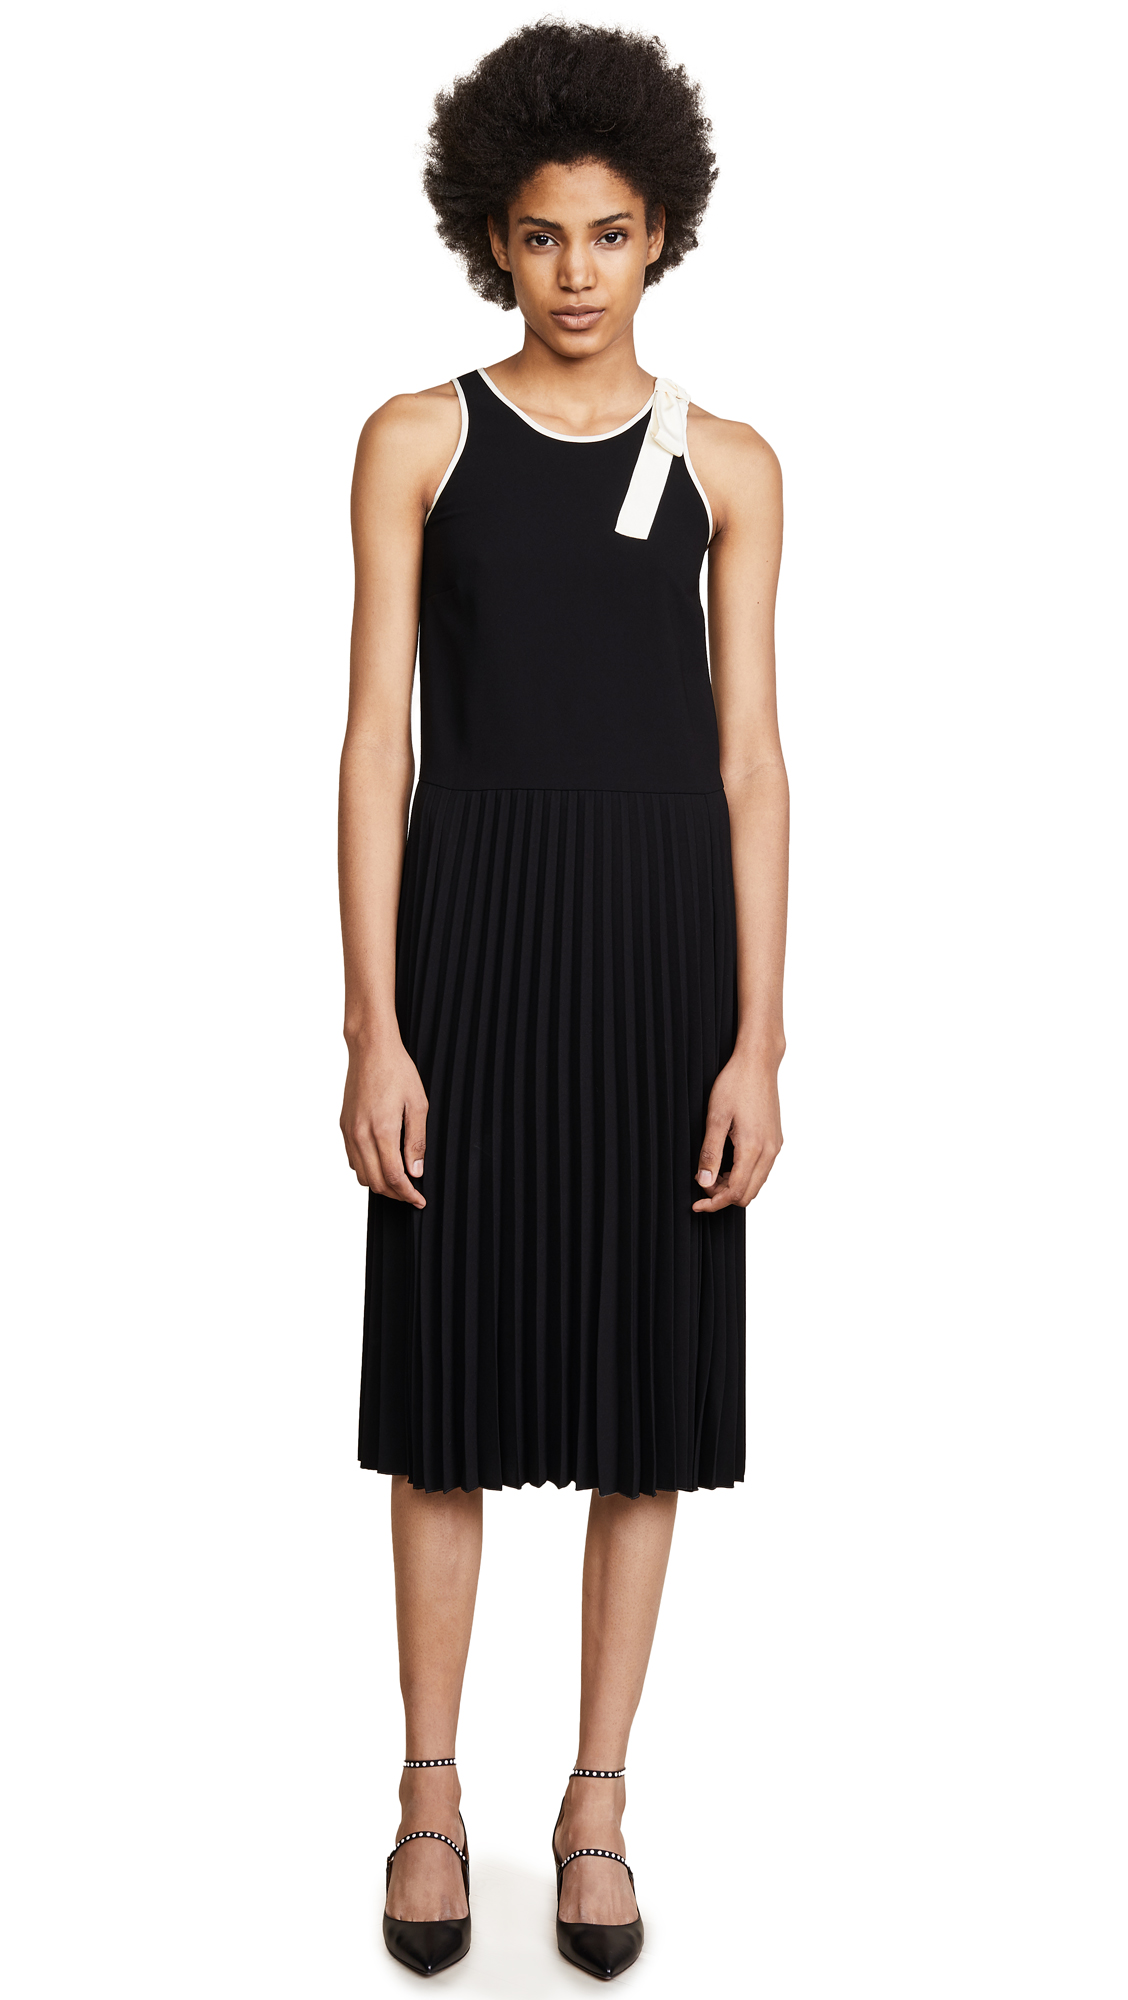 RED Valentino Pleated Dress - Nero/Avorio